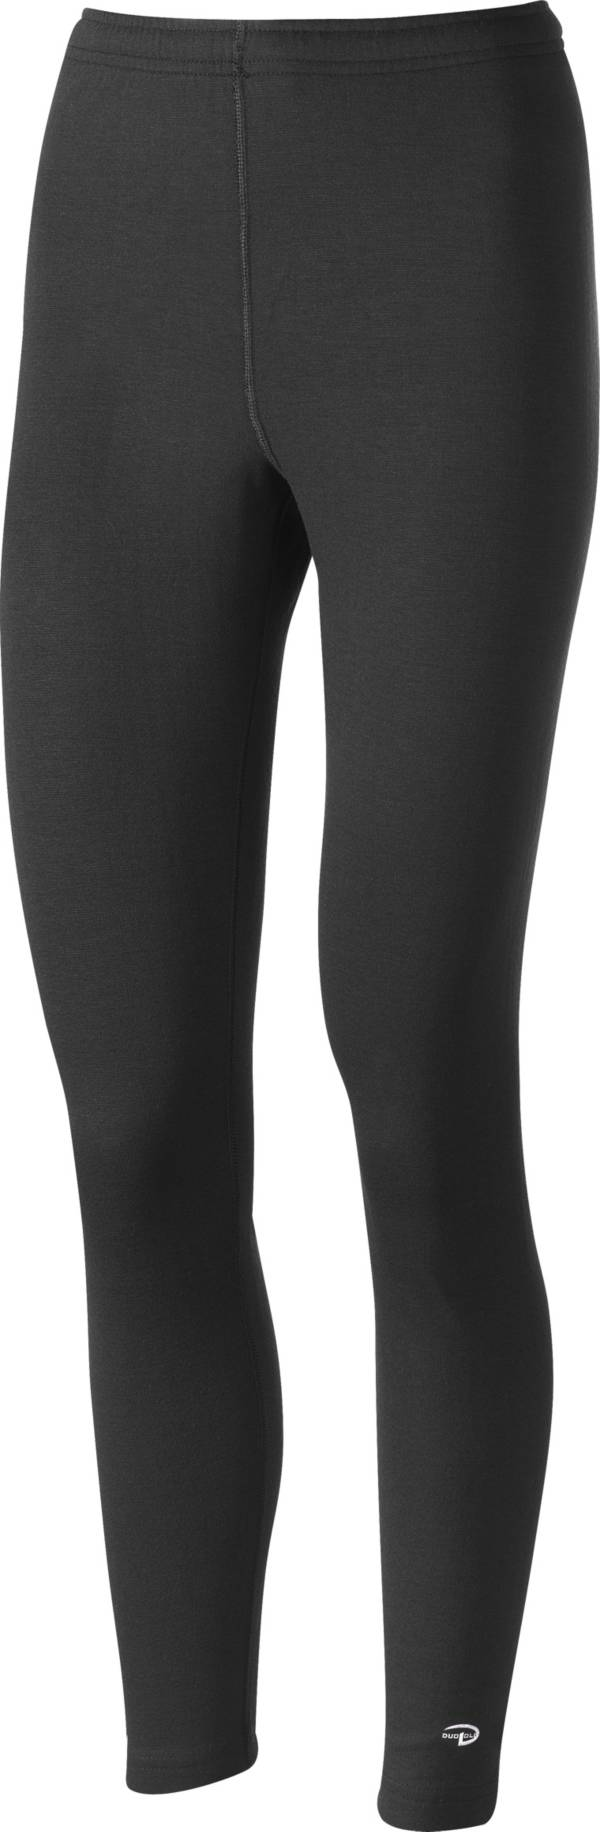 Duofold Women's Varitherm Expedition Pant product image